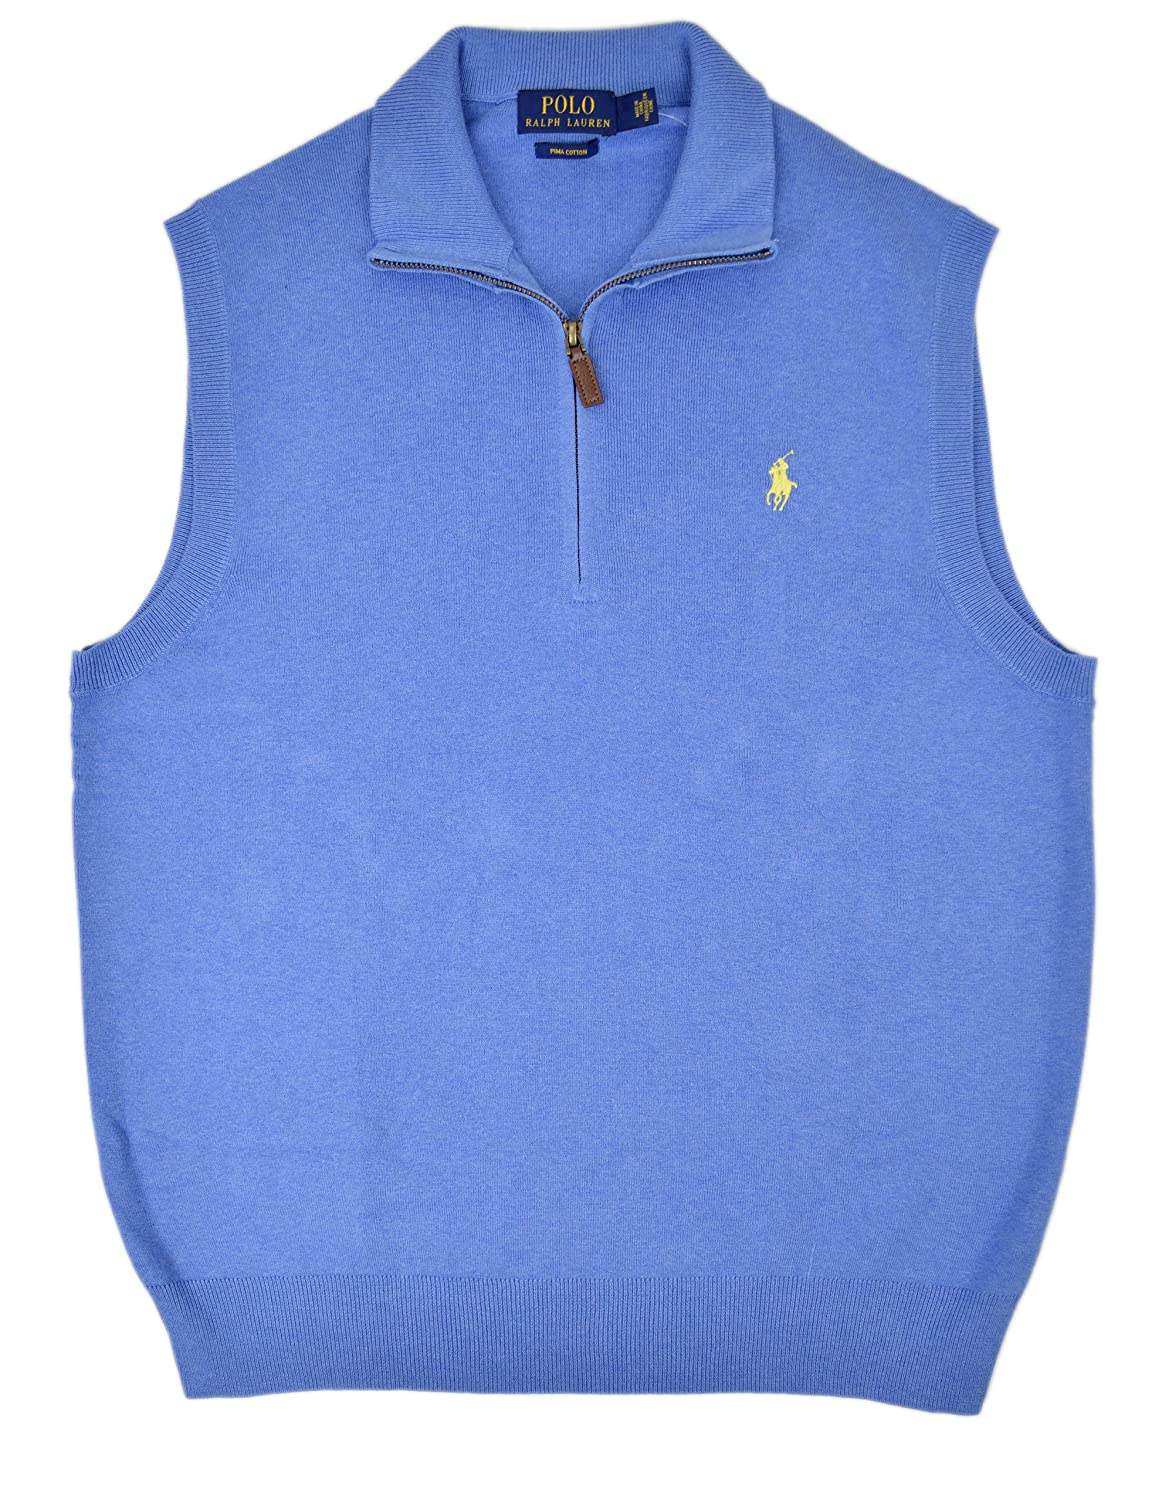 Polo Ralph Lauren Men's Pima Cotton Half Zip Sweater Vest Pale ...